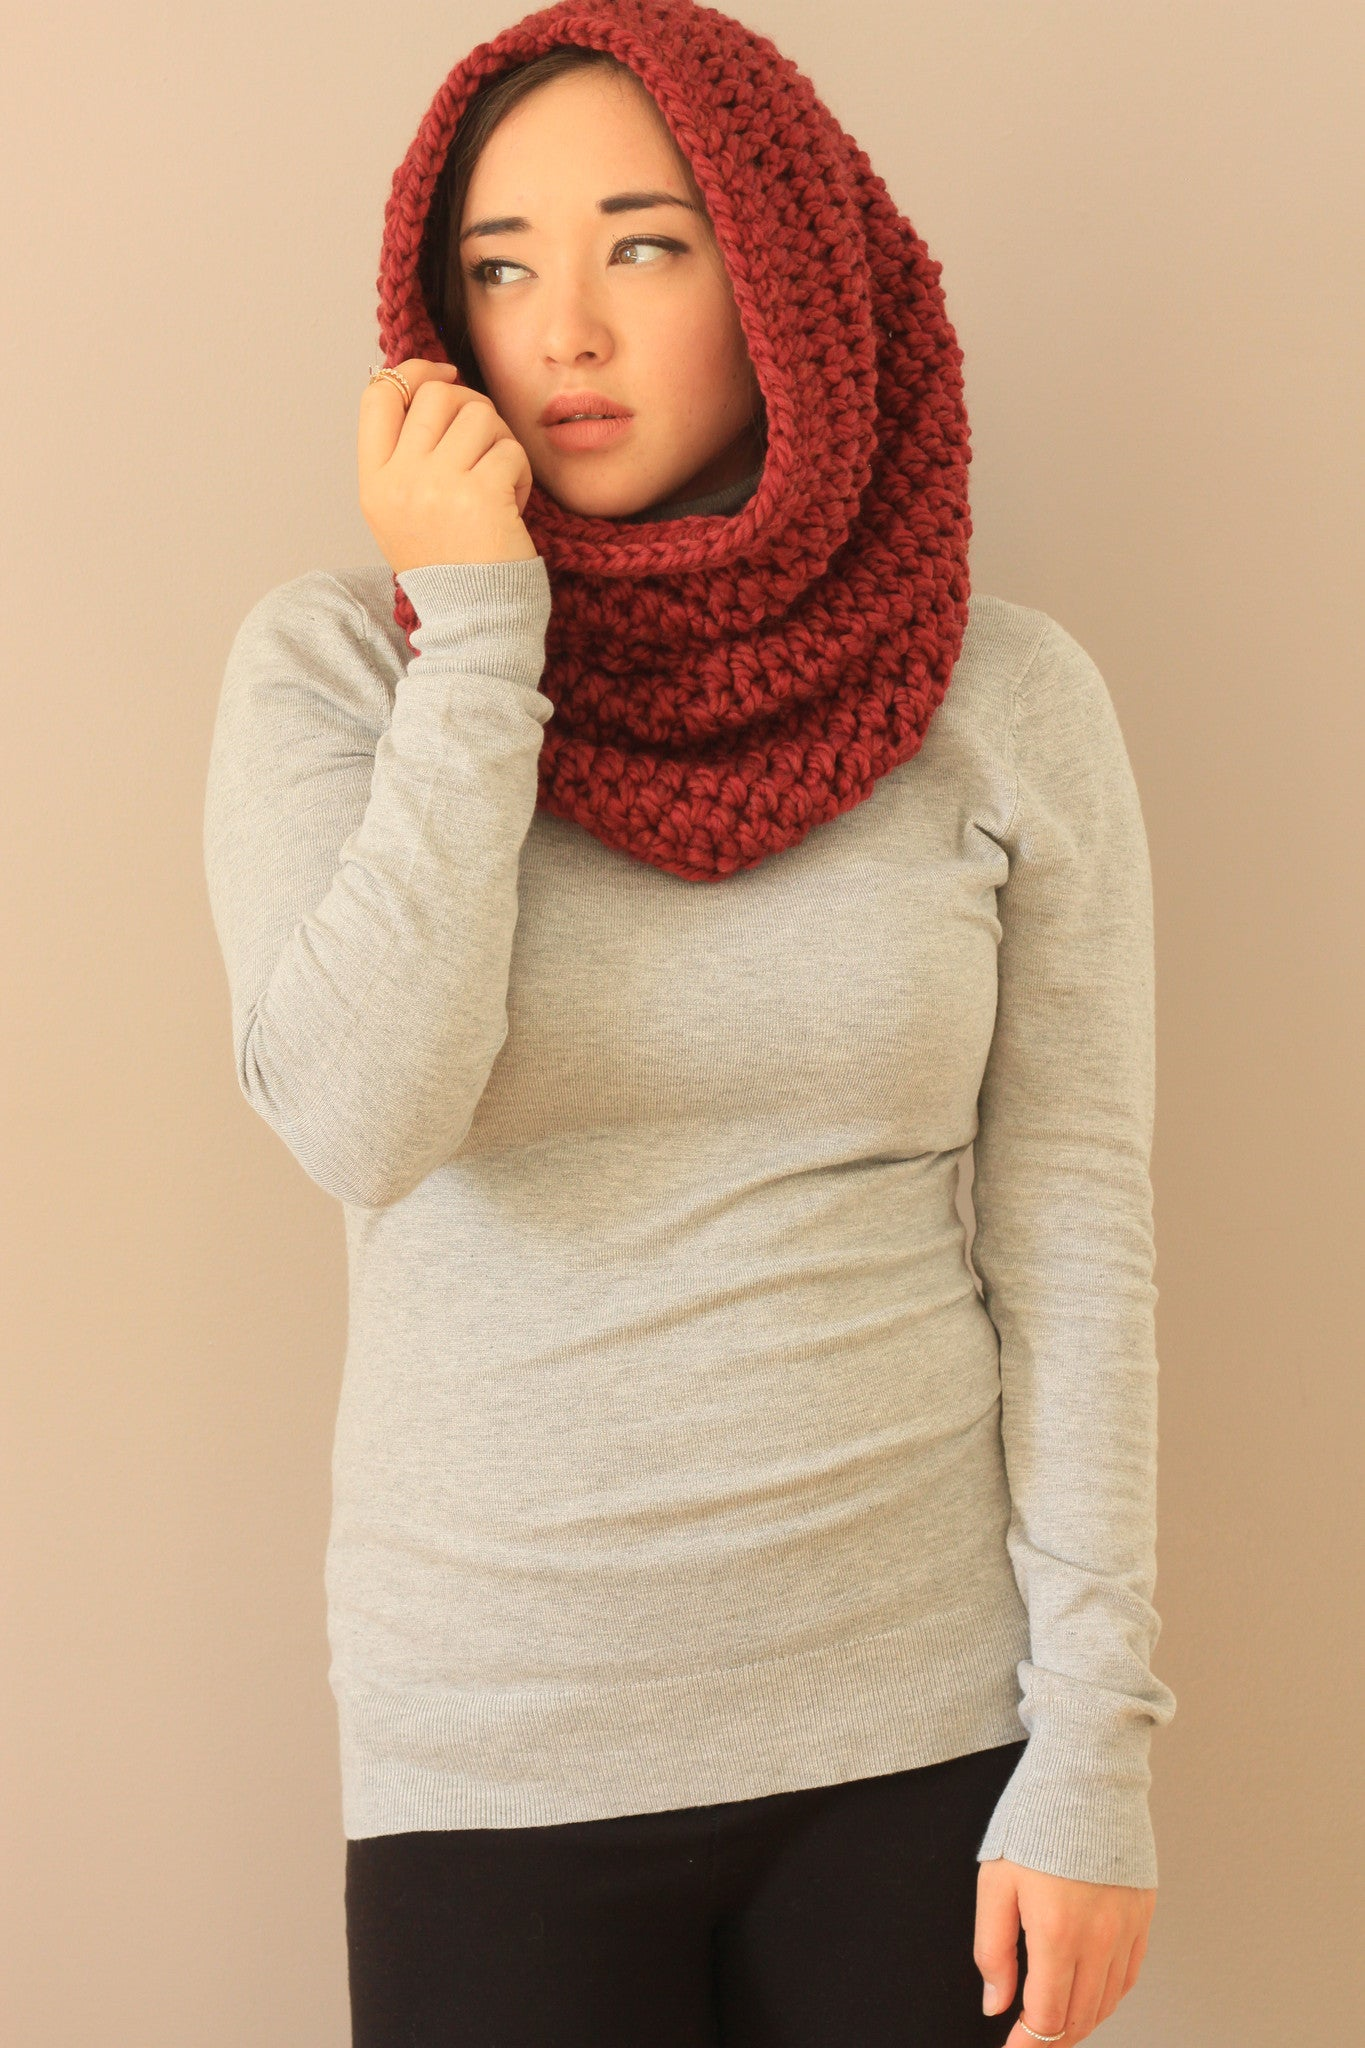 hooded cowl warm fall winter must haves mtl blogger